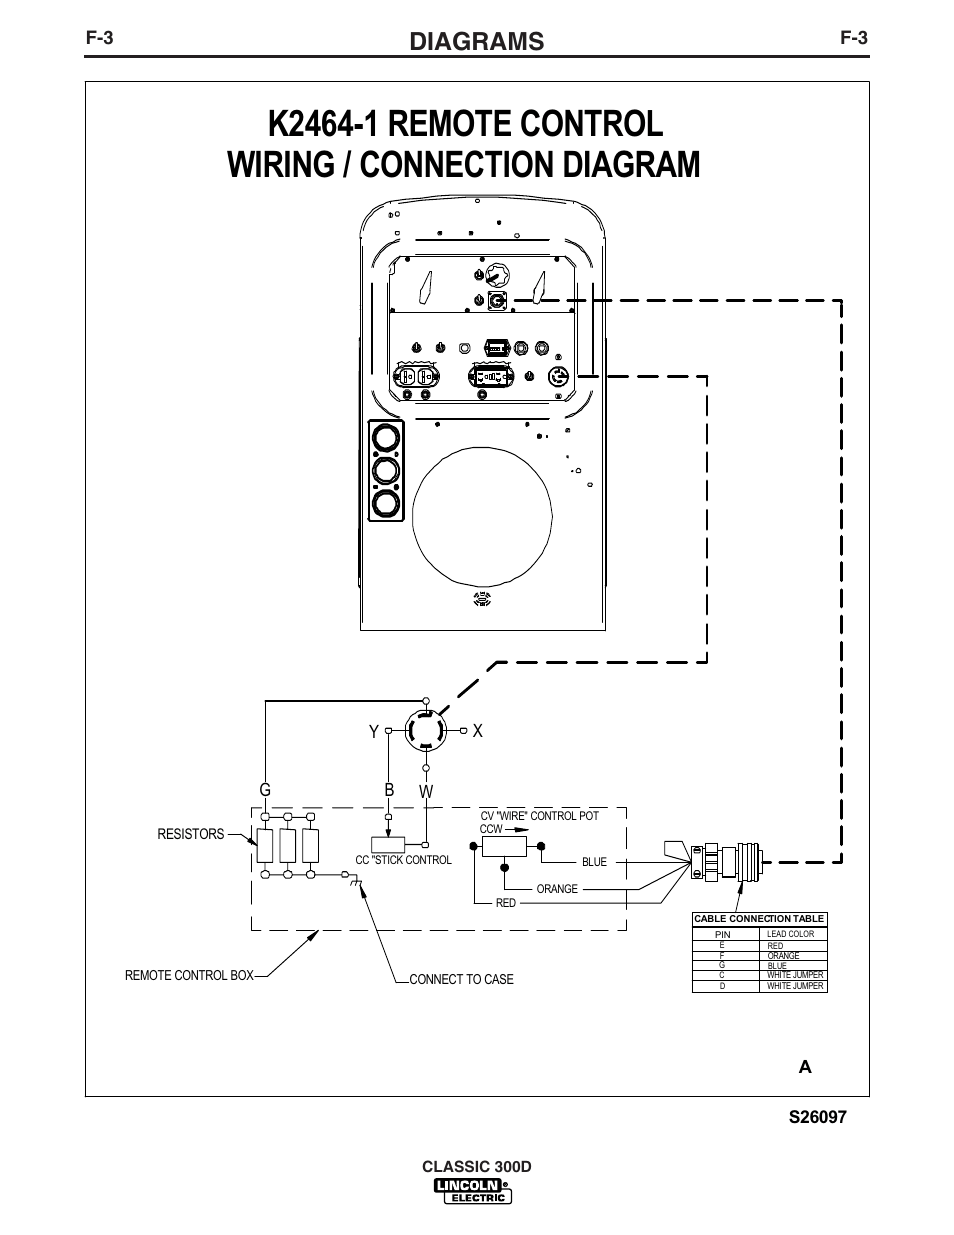 medium resolution of diagrams yx b g w lincoln electric im631 classic 300 d user manual page 30 34